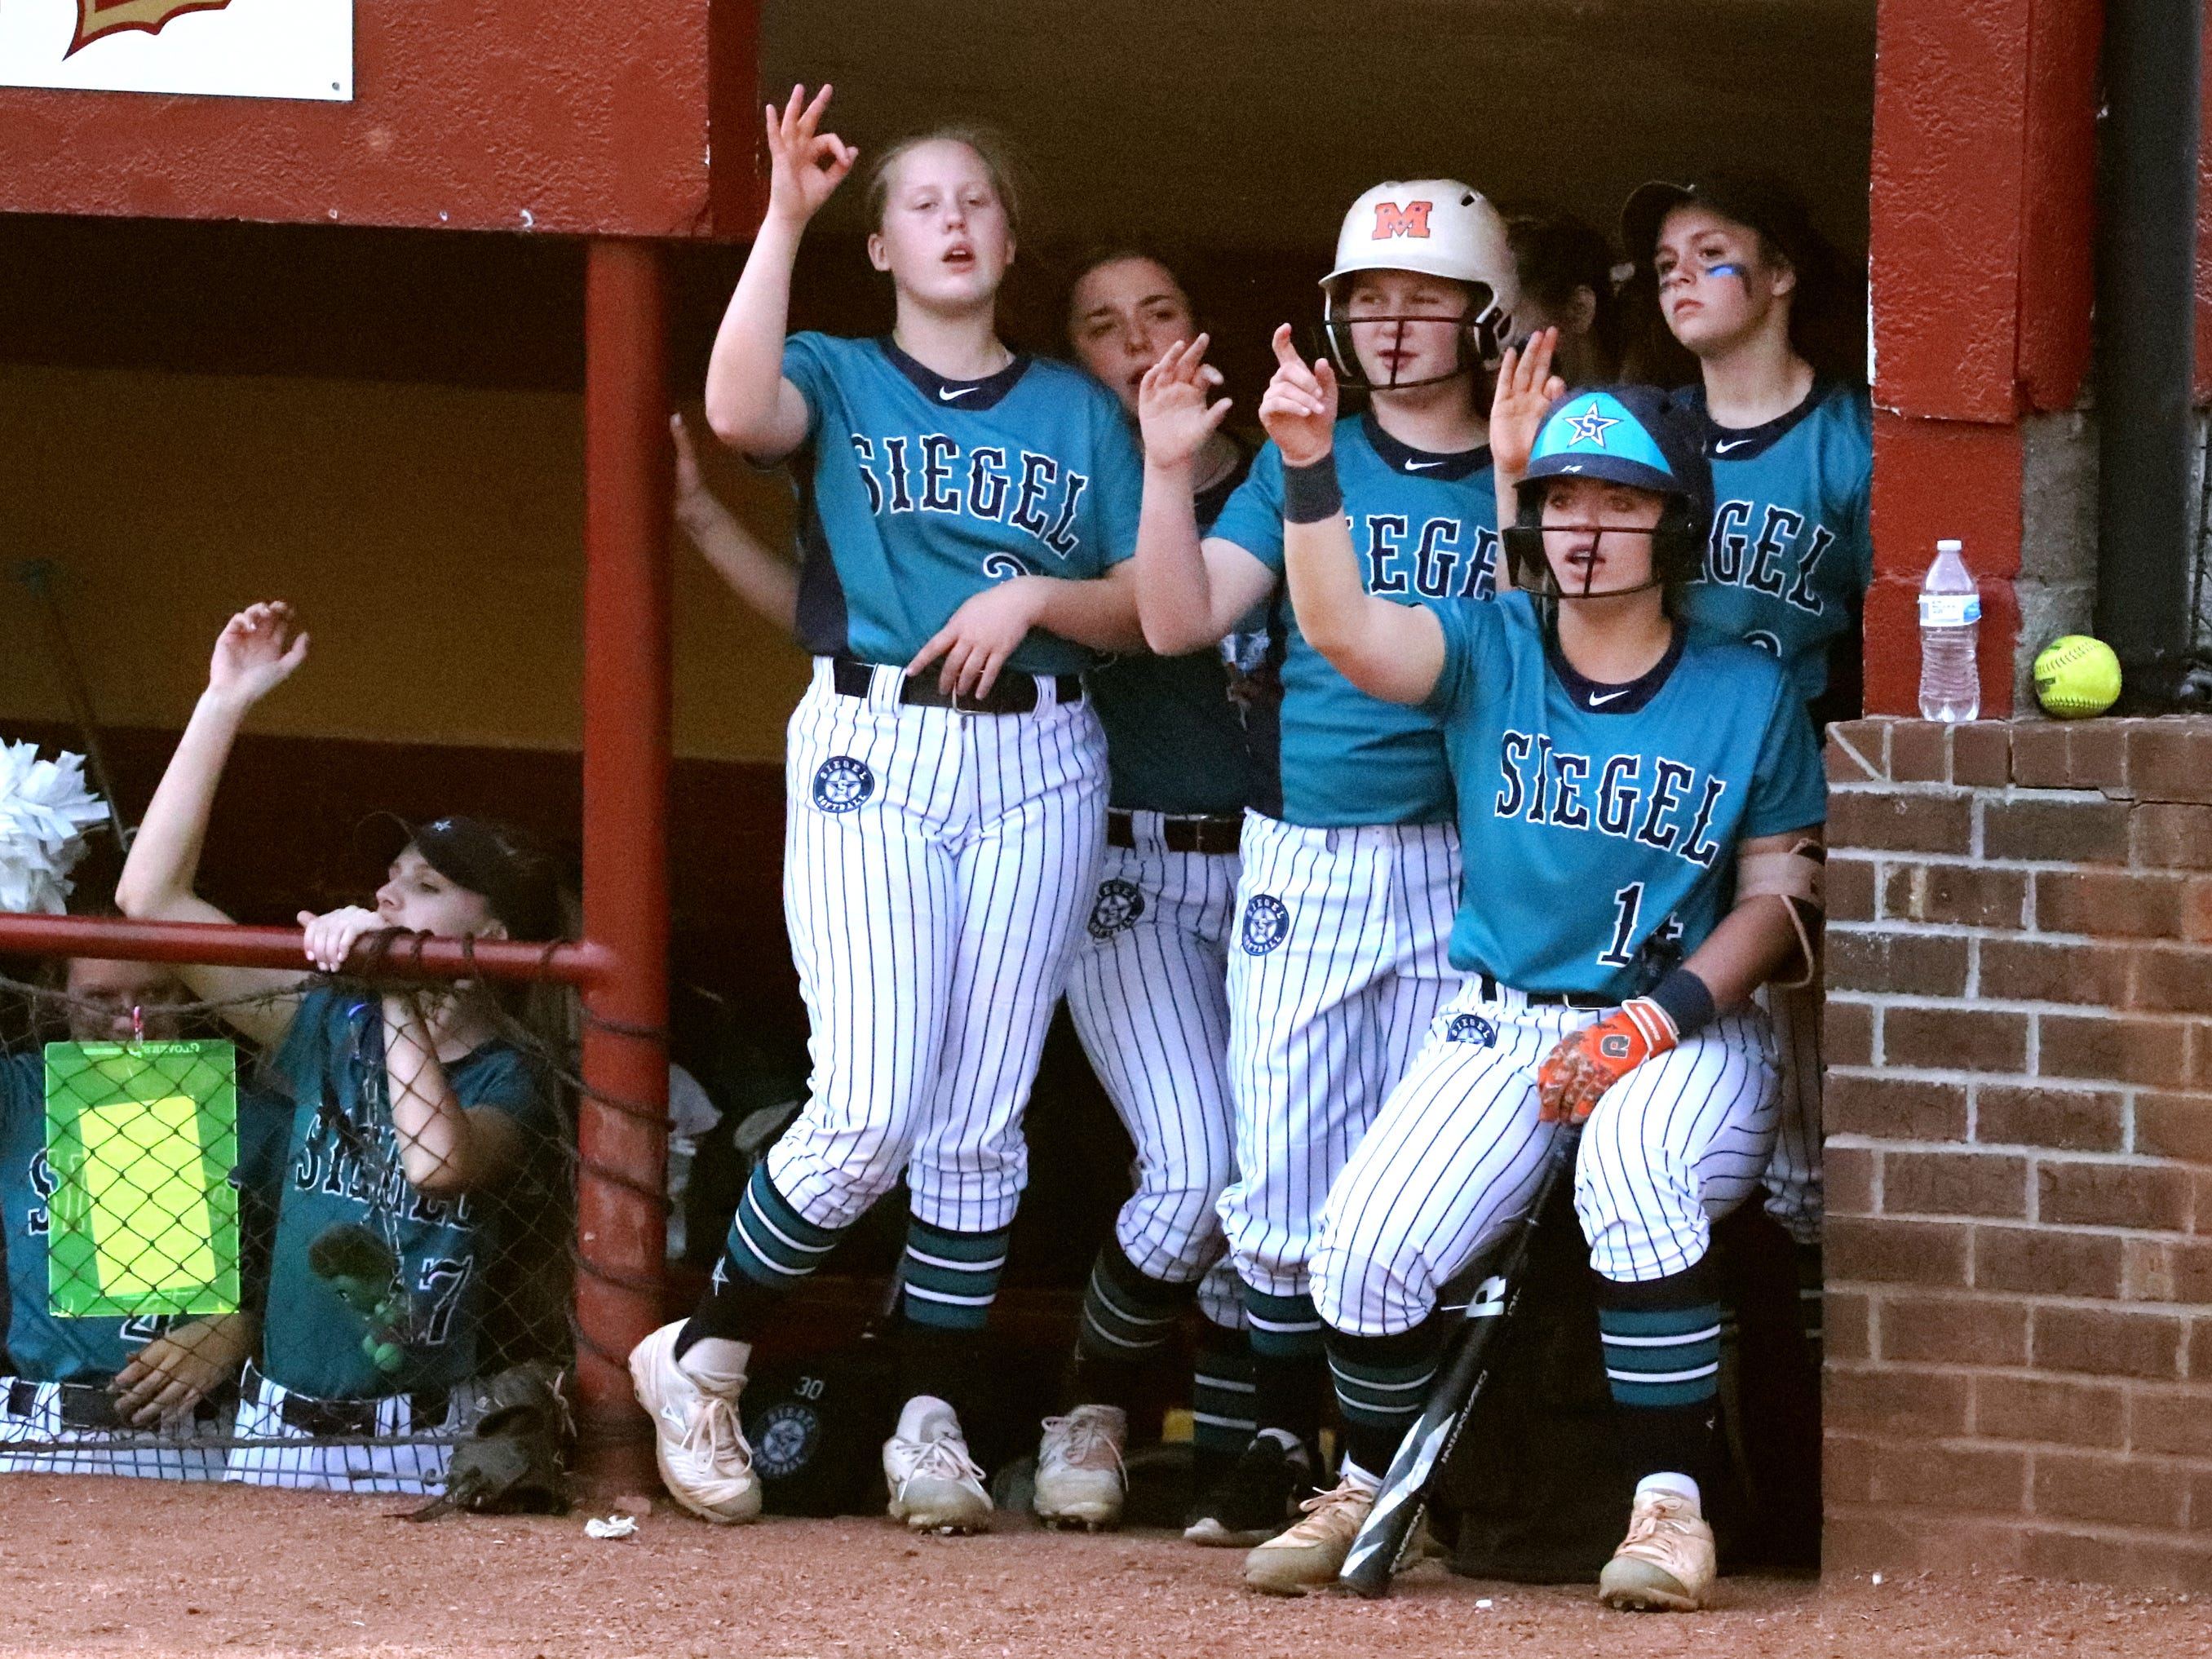 Siegel players in the dugout cheer on their team during the game against Riverdale on Thursday April 11, 2019, at Riverdale.